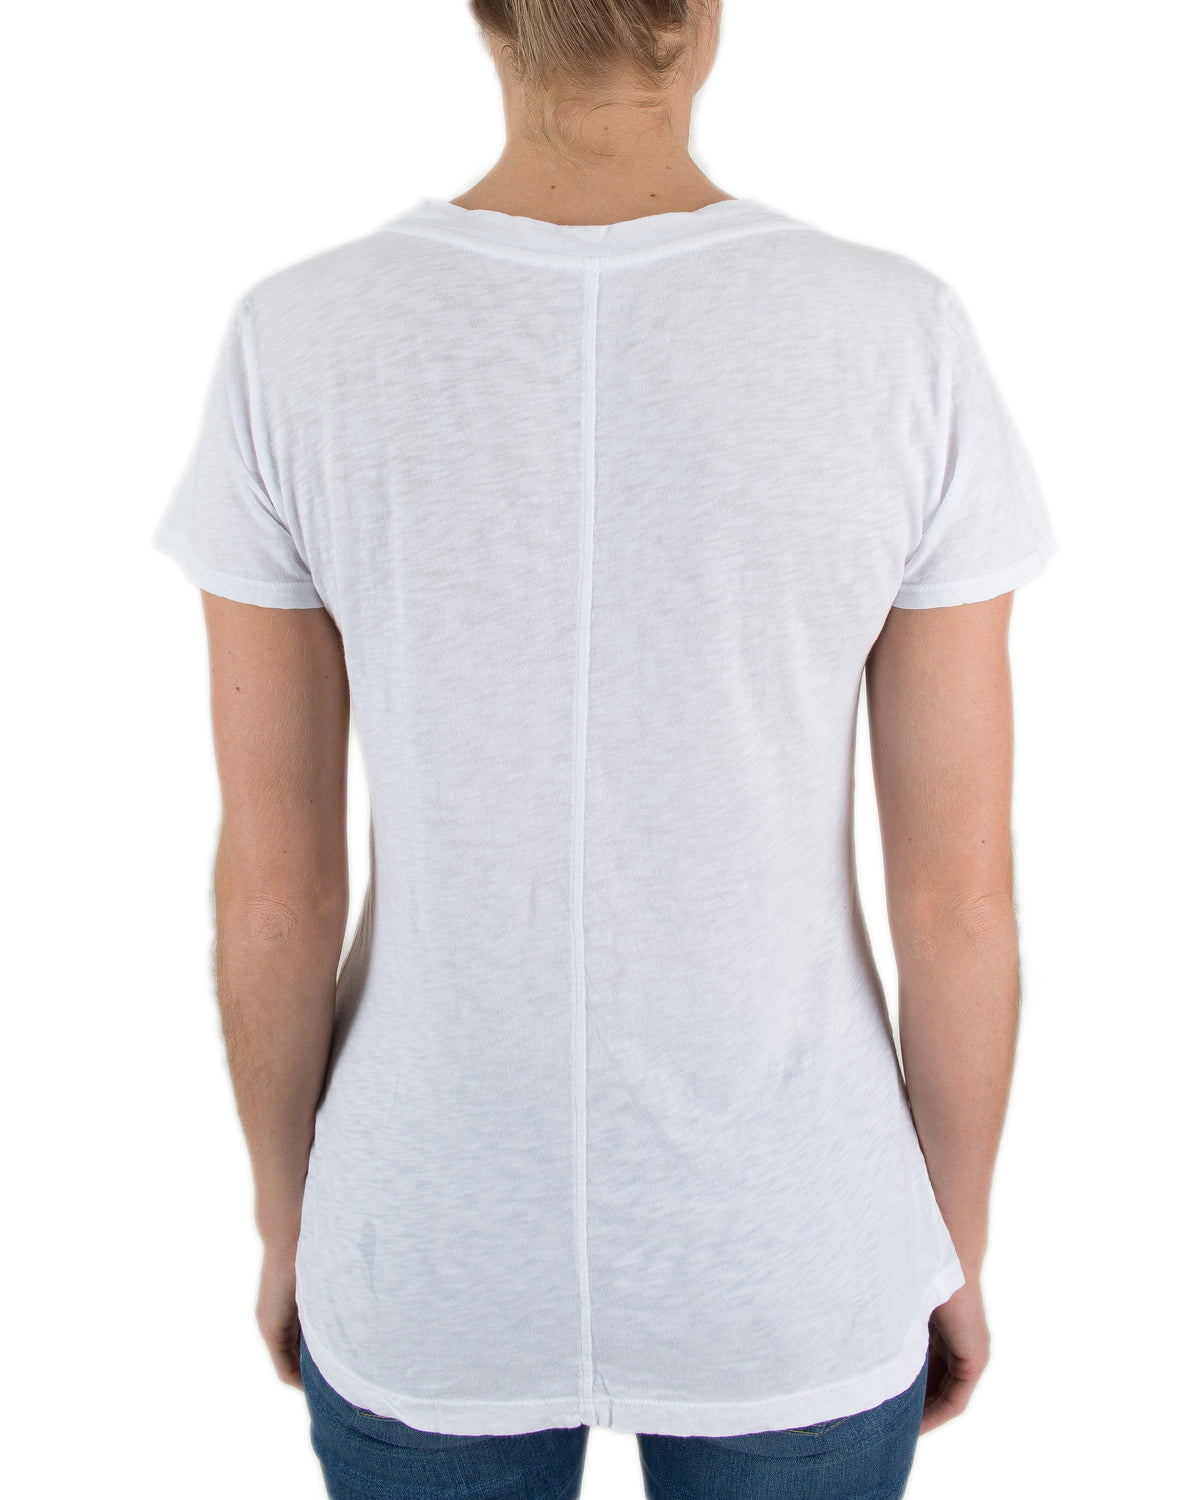 Velvet by Graham & Spencer Clothing Lilith V Tee in White